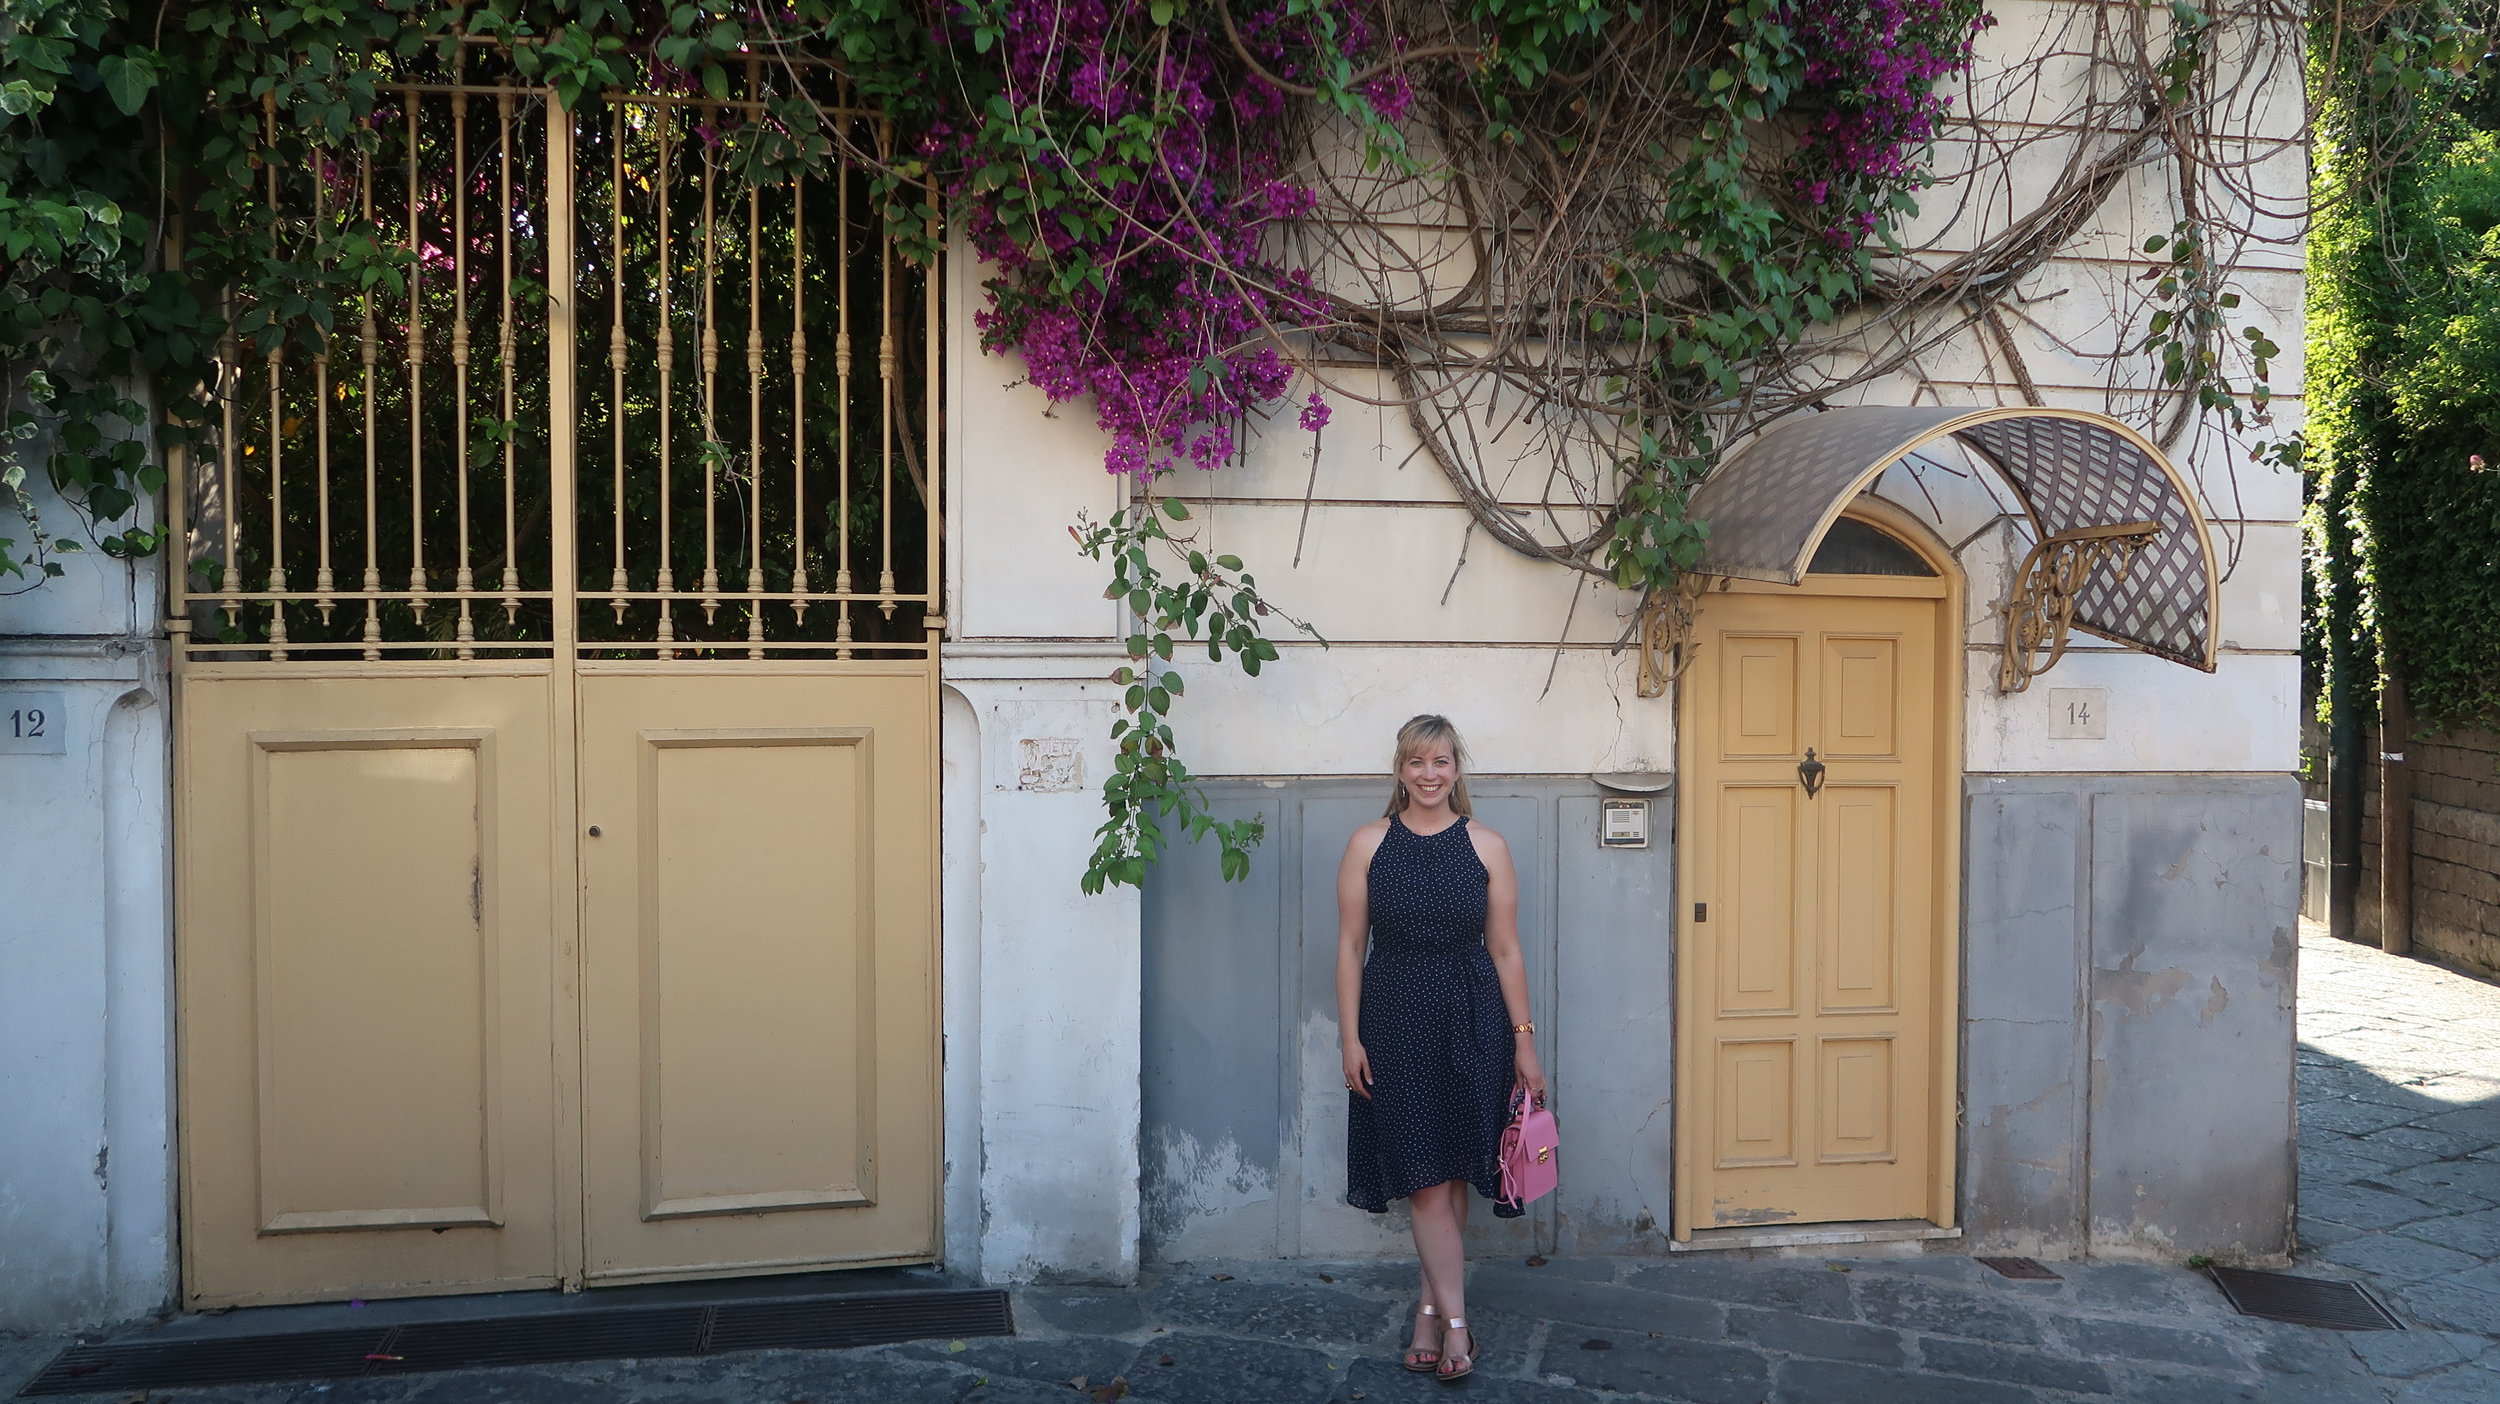 Photo taken in Sorrento on our walk from the marina to the city centre (Amalfi Coast, Italy).